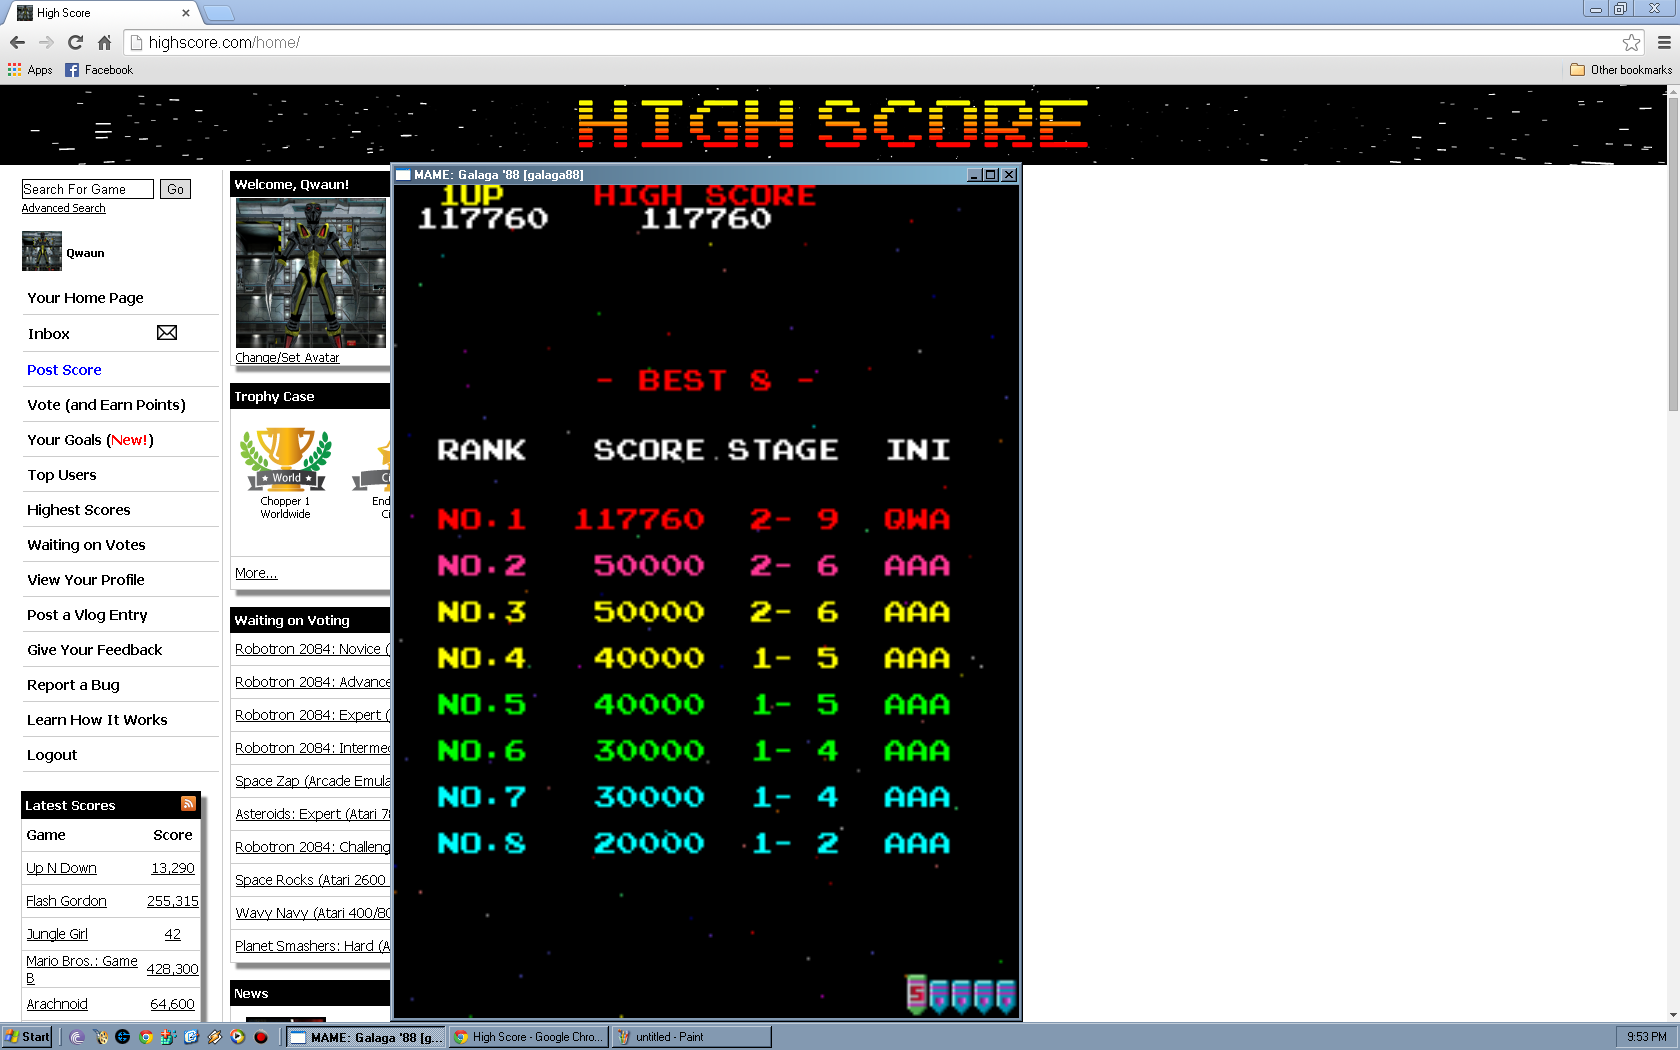 Qwaun: Galaga 88 (Arcade Emulated / M.A.M.E.) 117,760 points on 2014-04-13 23:55:40